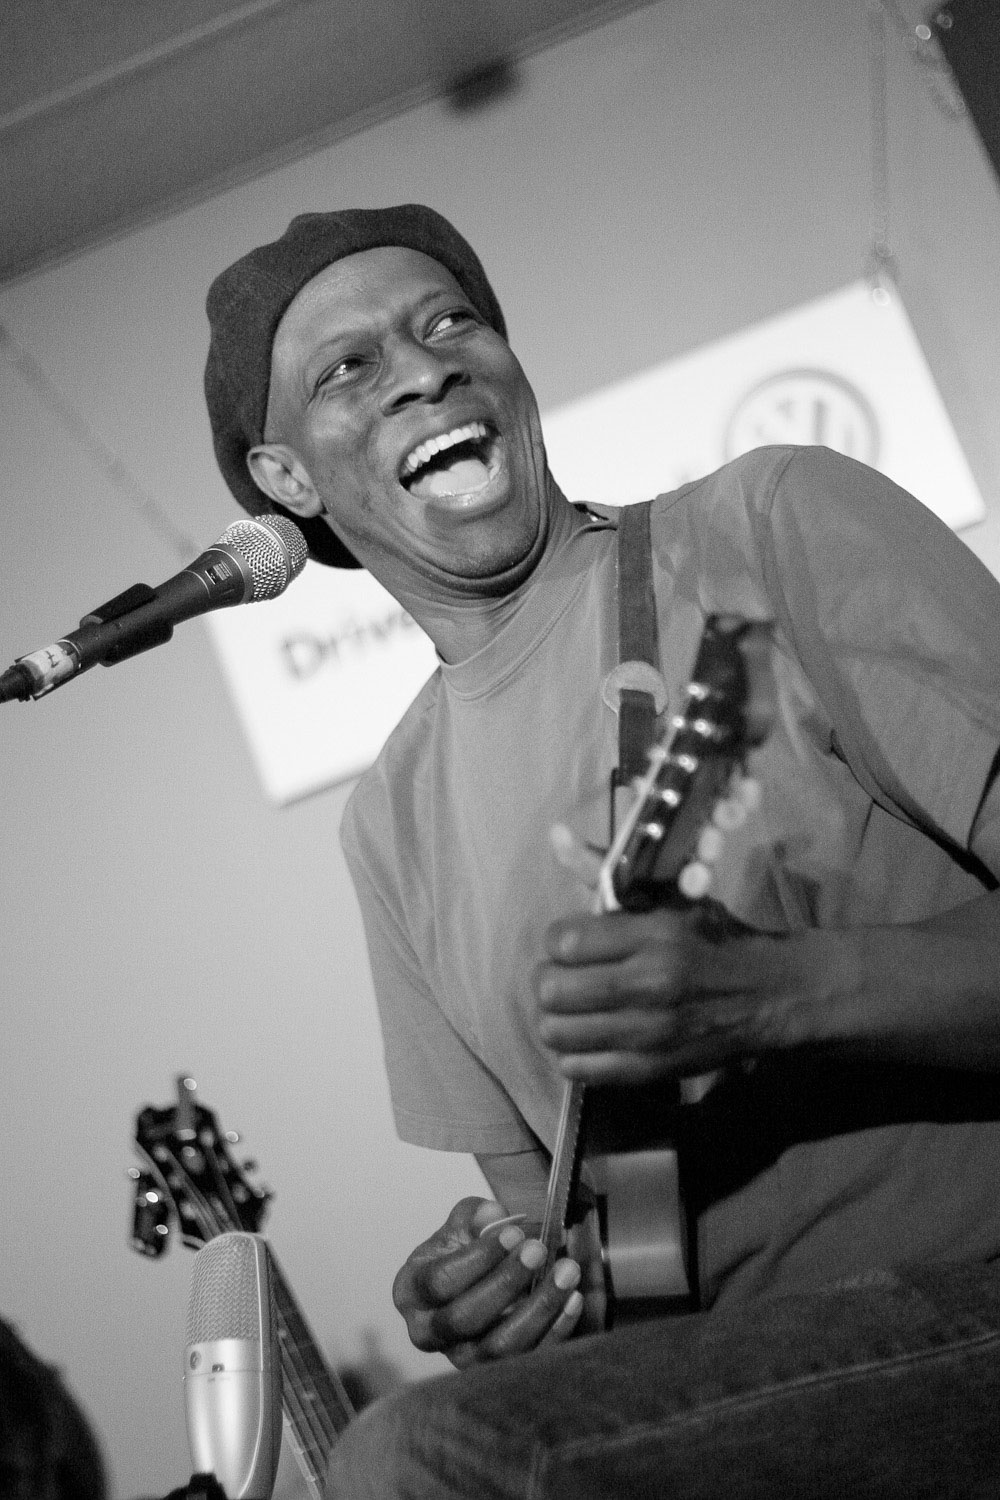 Keb' Mo', blues musician, sings and plays at KINK.fm 102